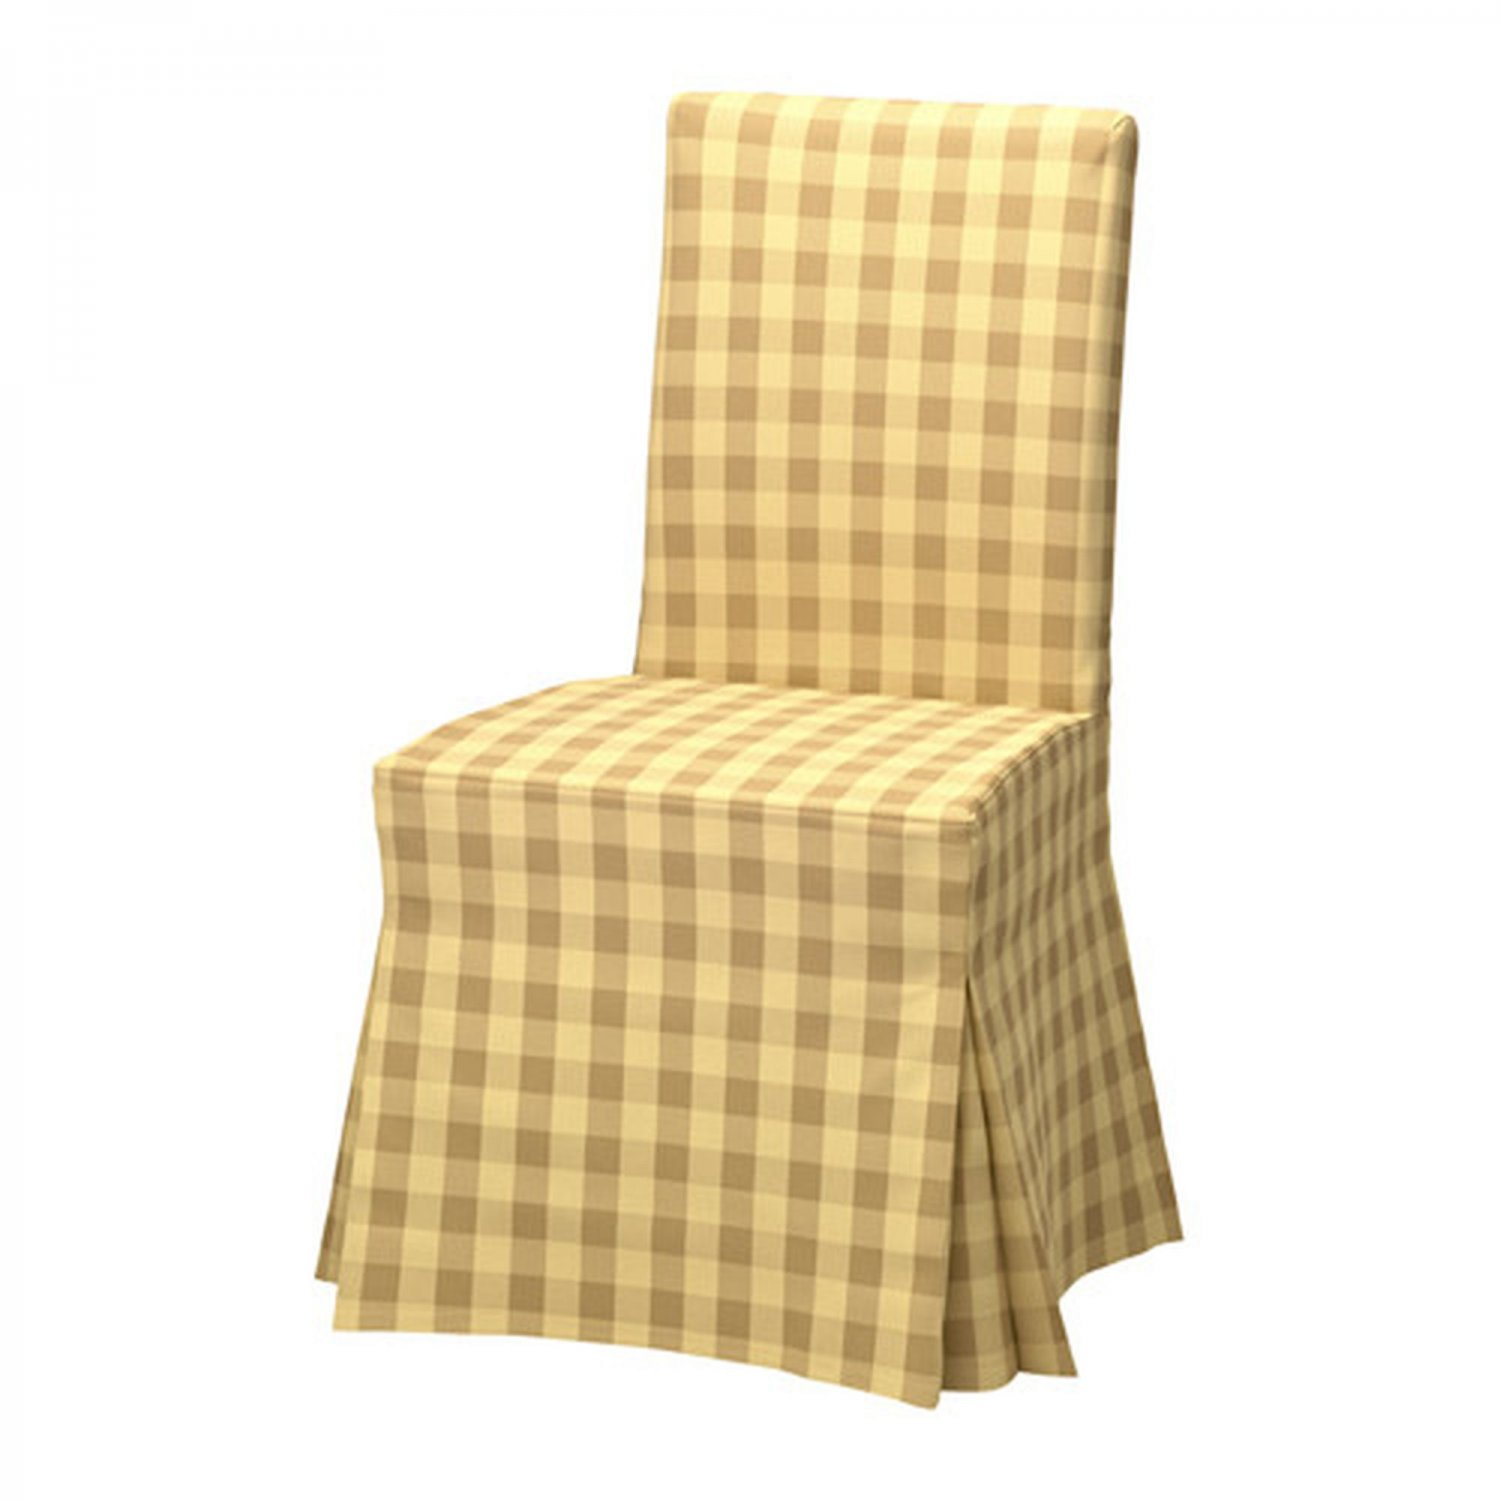 Ikea Yellow Chair Ikea Henriksdal Skaftarp Yellow Chair Slipcover Cover